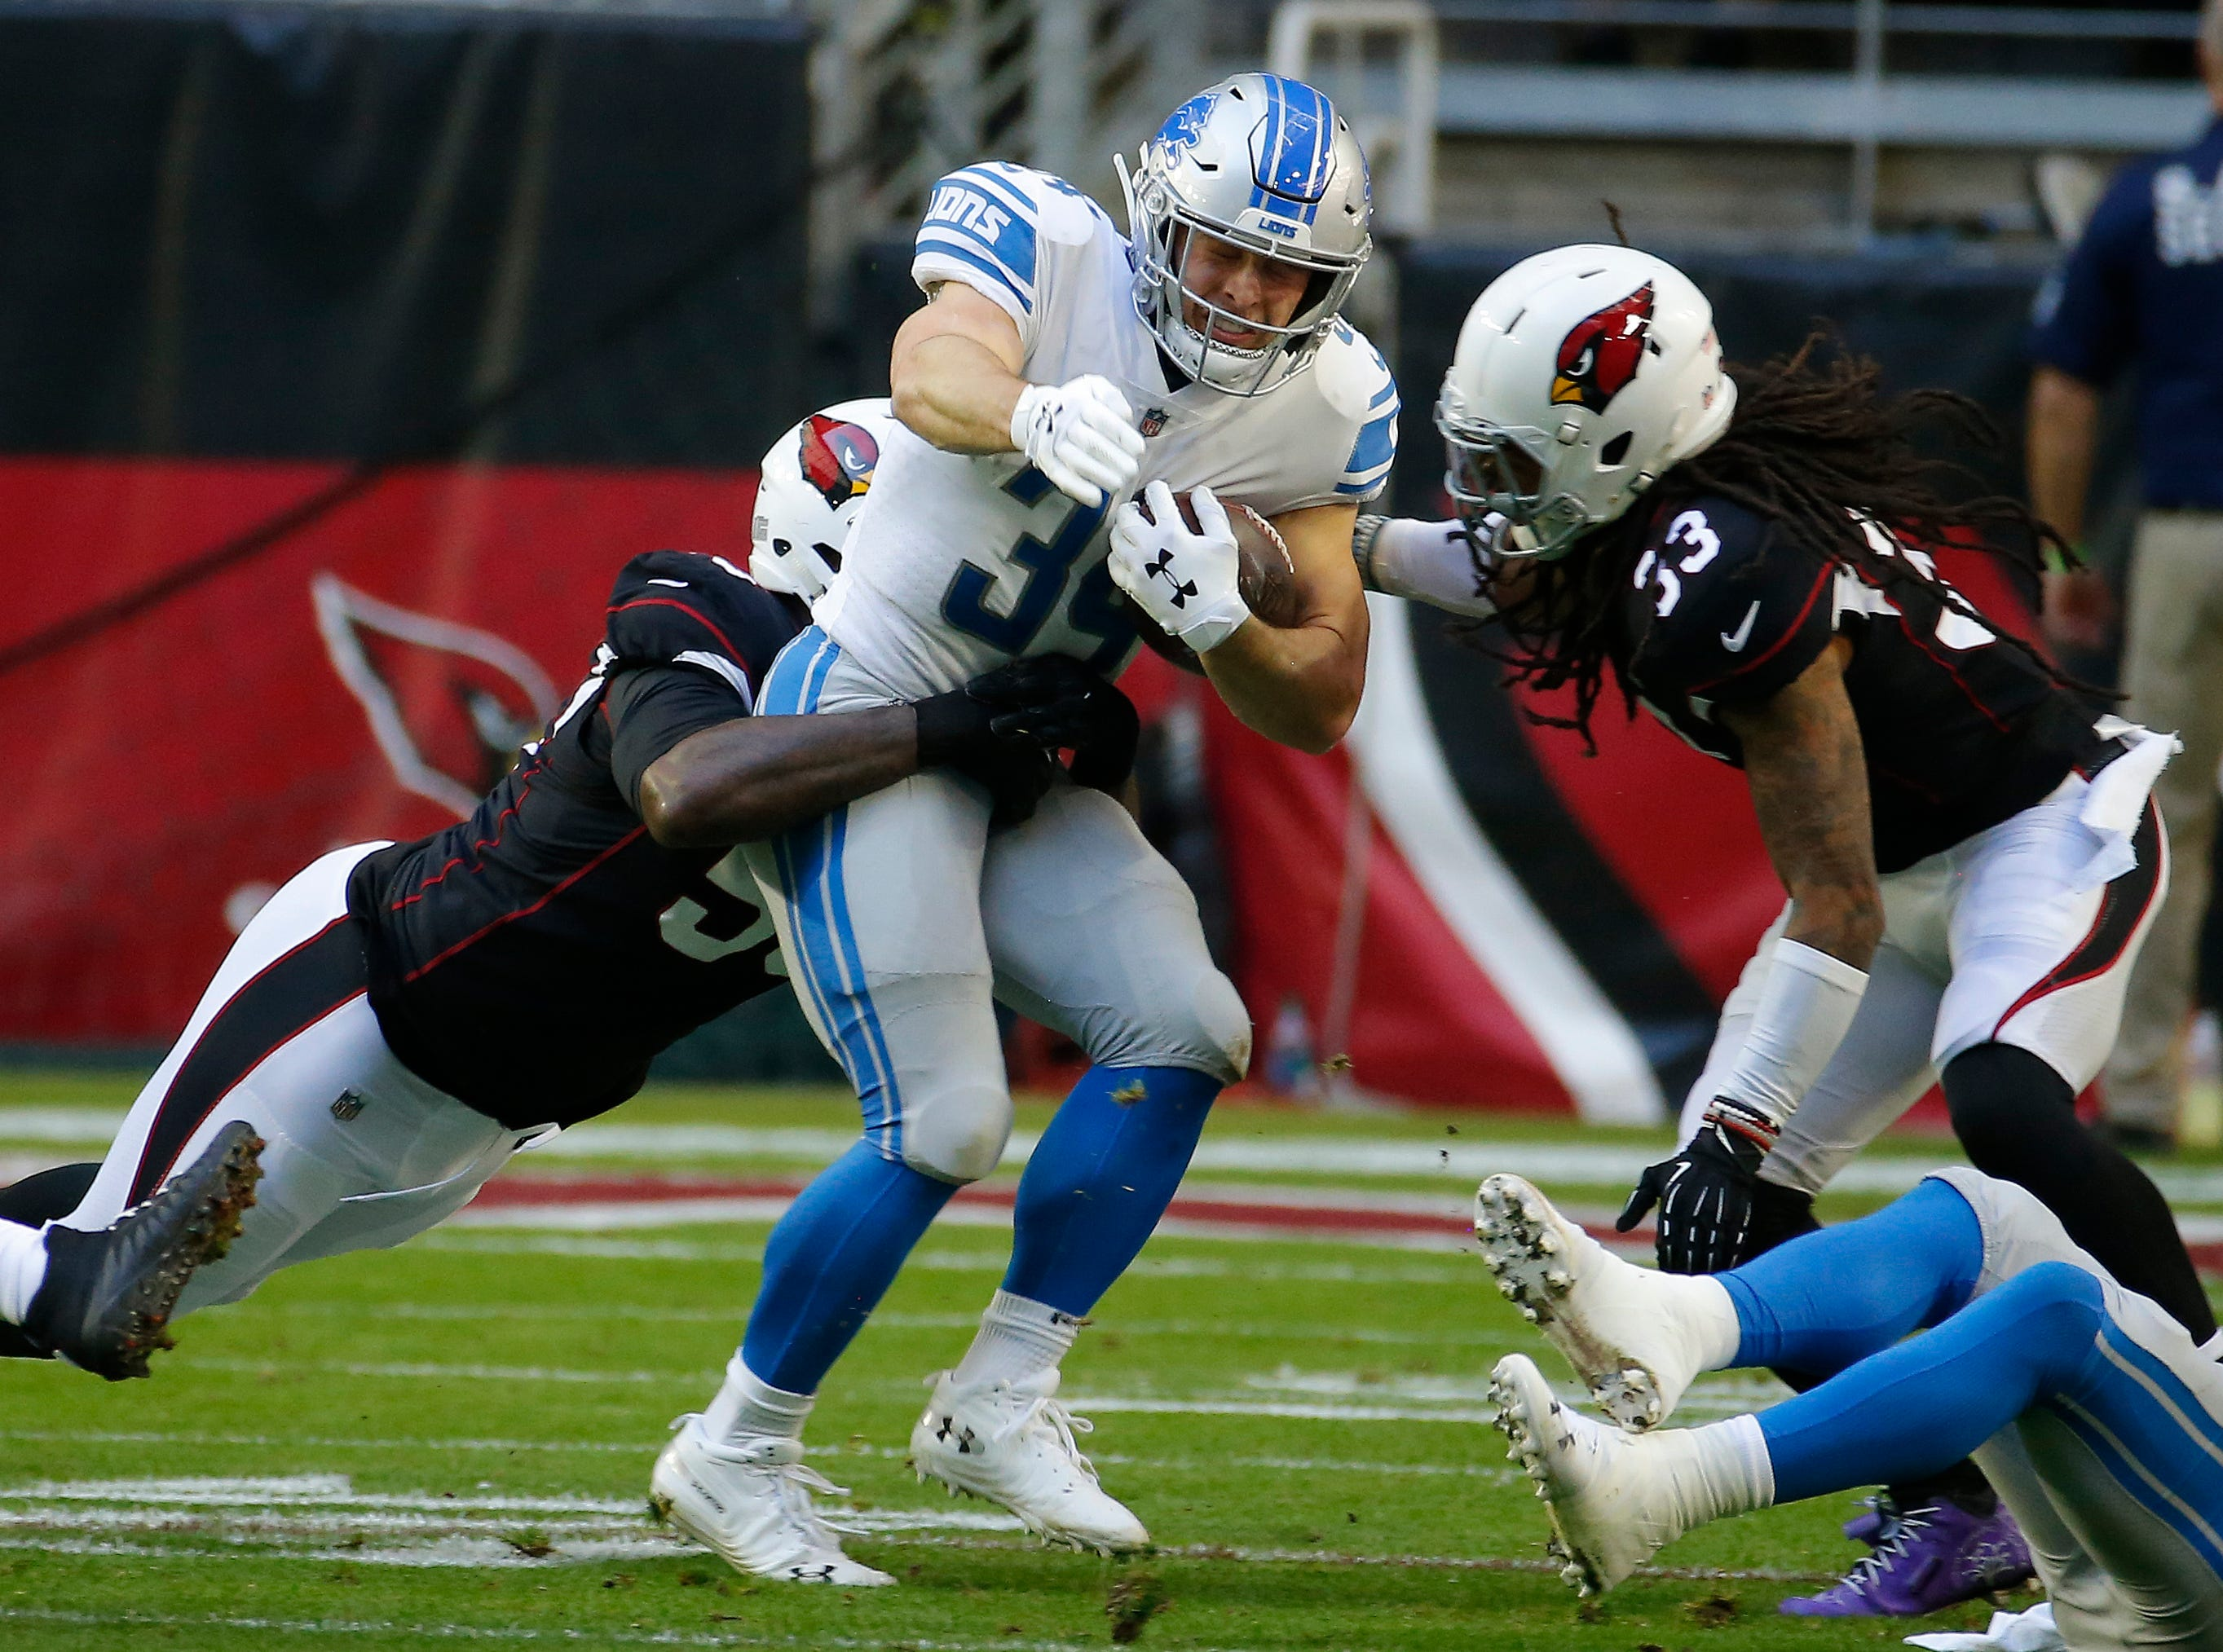 Detroit Lions running back Zach Zenner (34) is hit by Arizona Cardinals defensive end Zach Moore, left, during the first half.